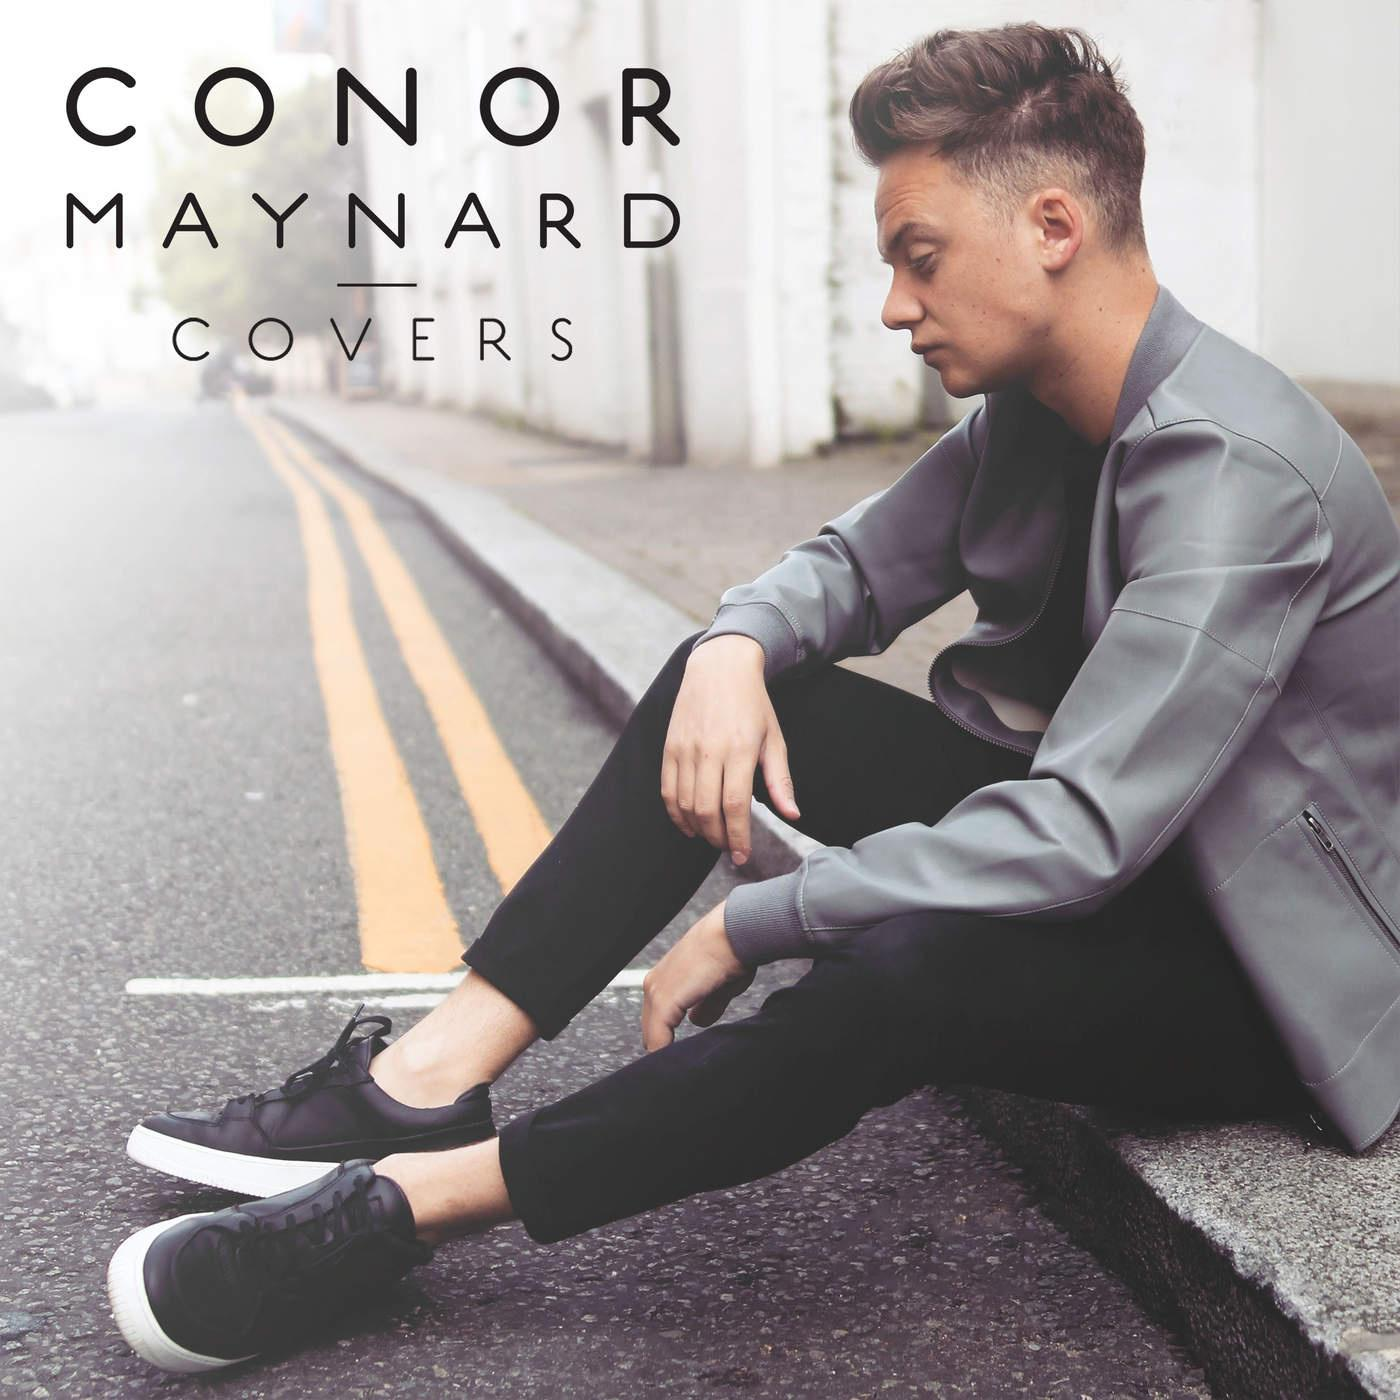 Conor Maynard - Crash 感人翻唱